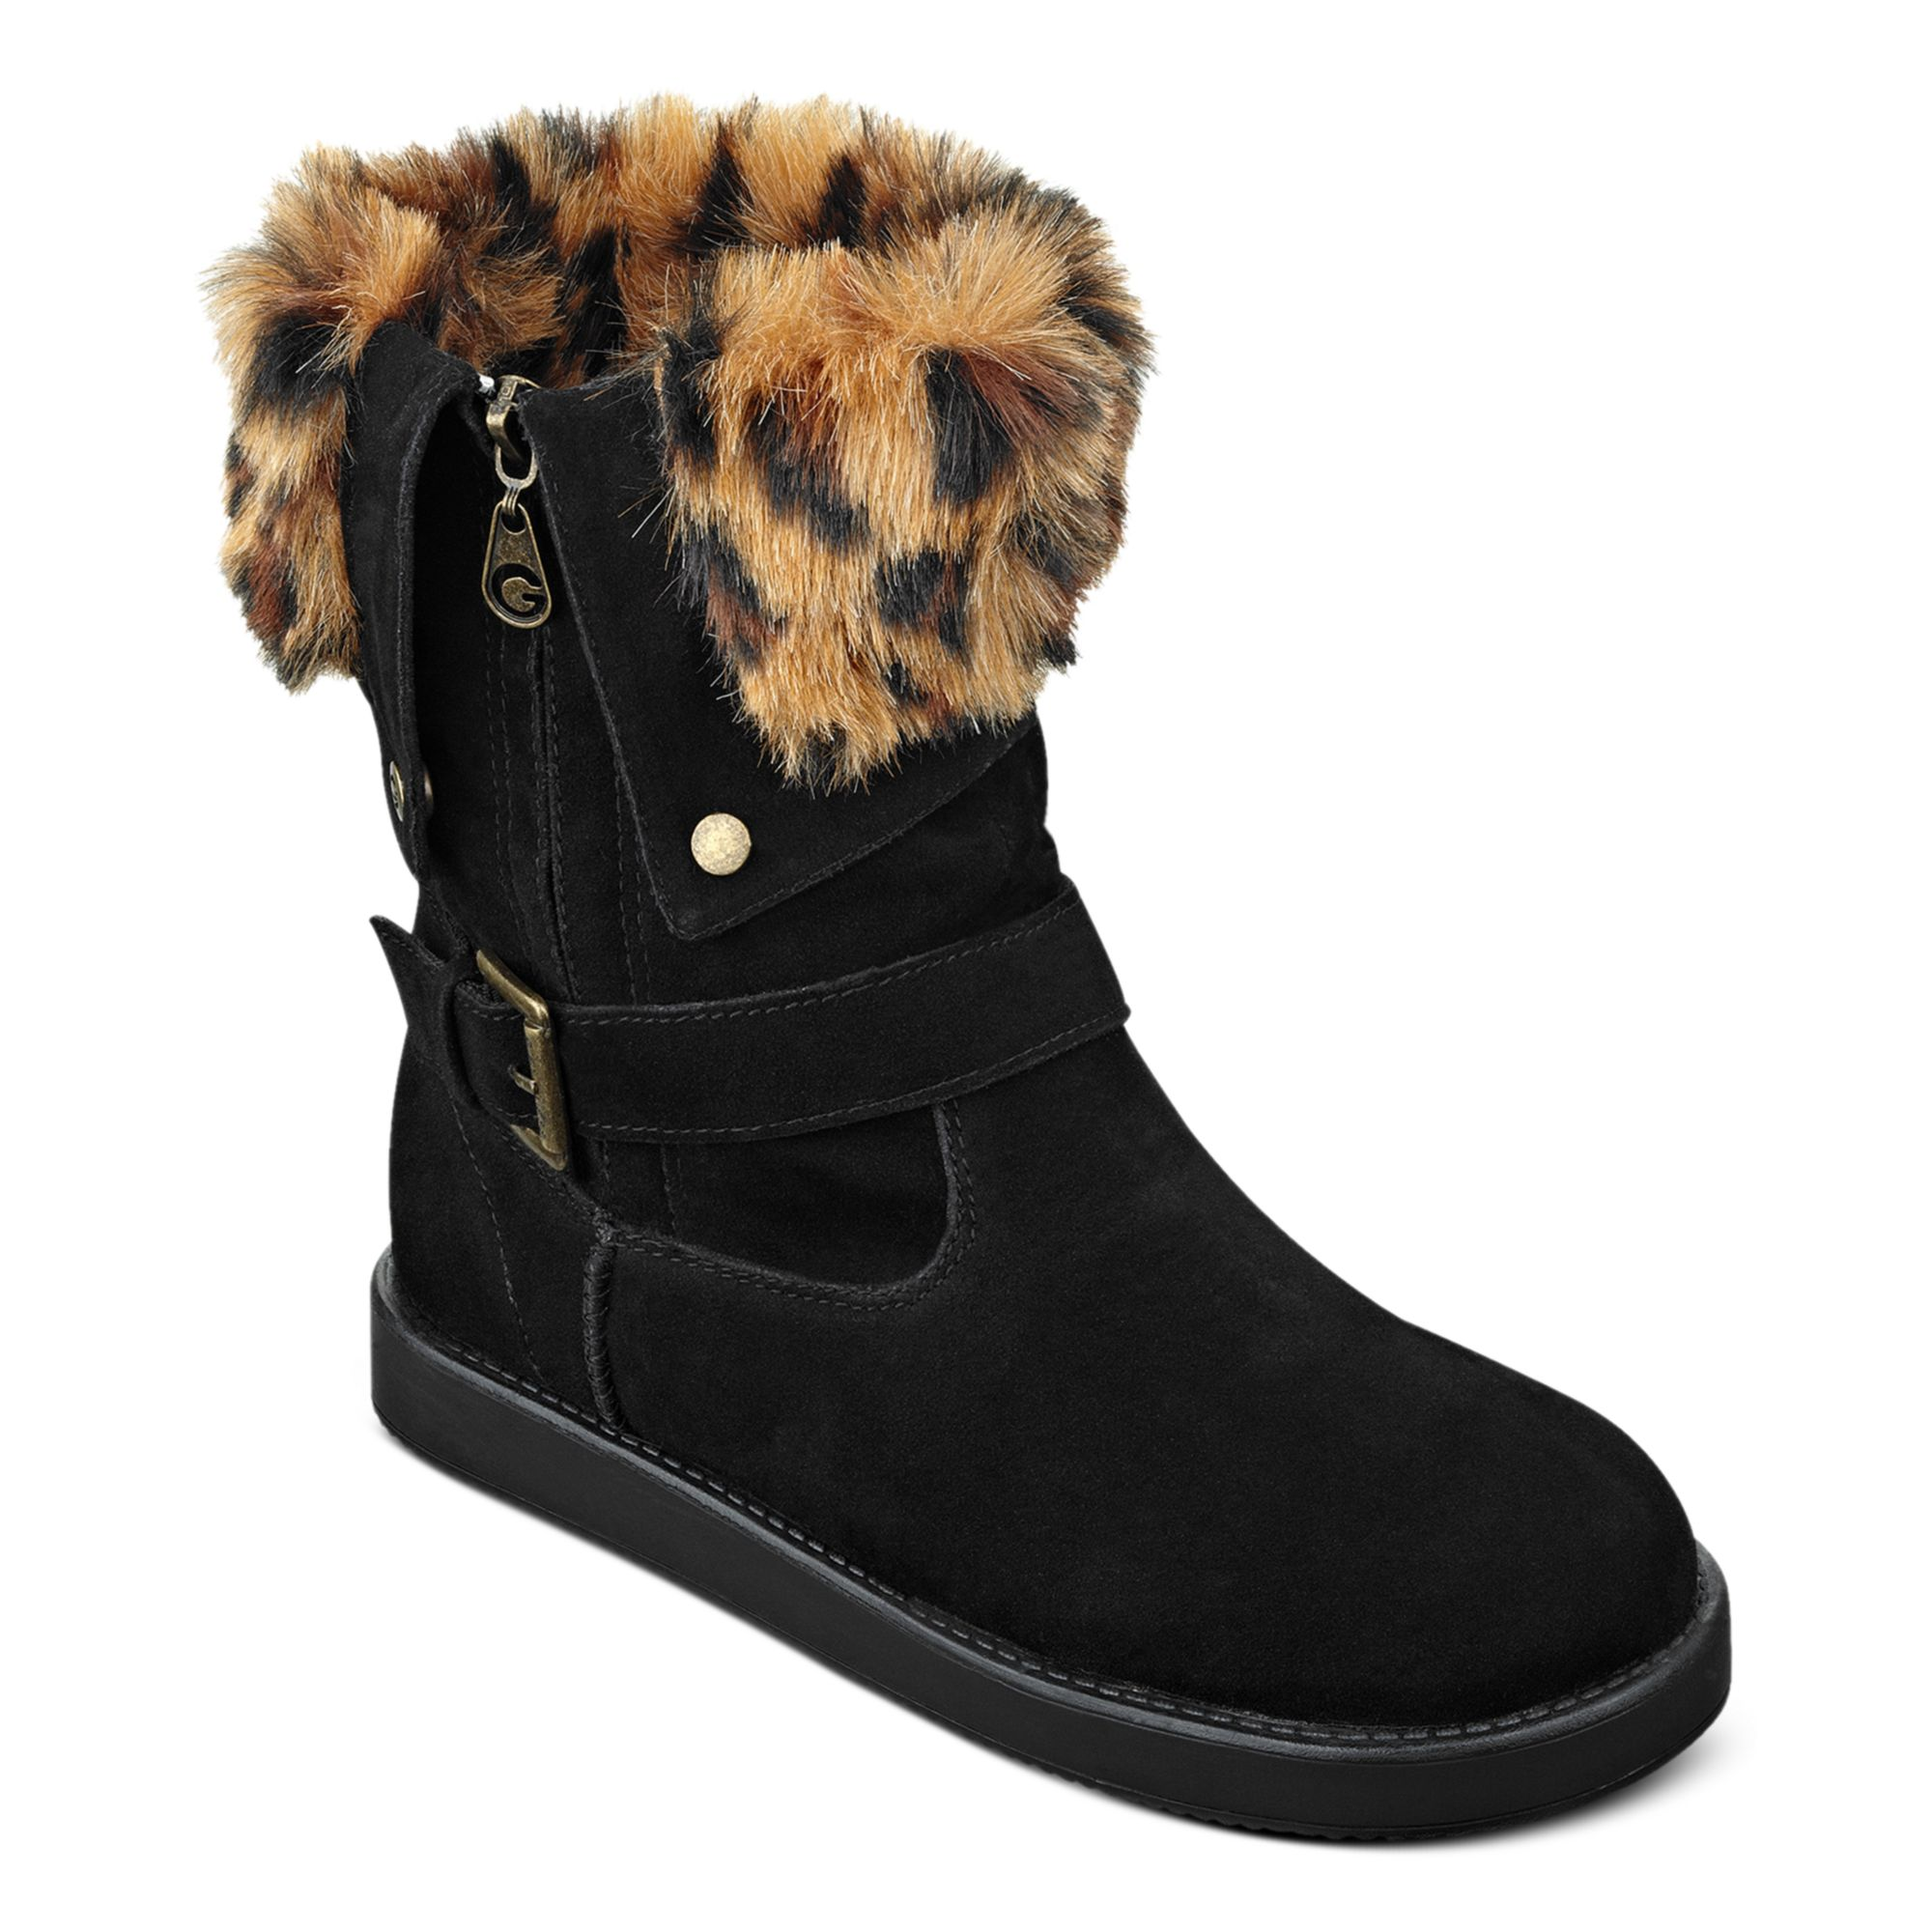 G By Guess Womens Boots Amaze Fauxfur Cold Weather